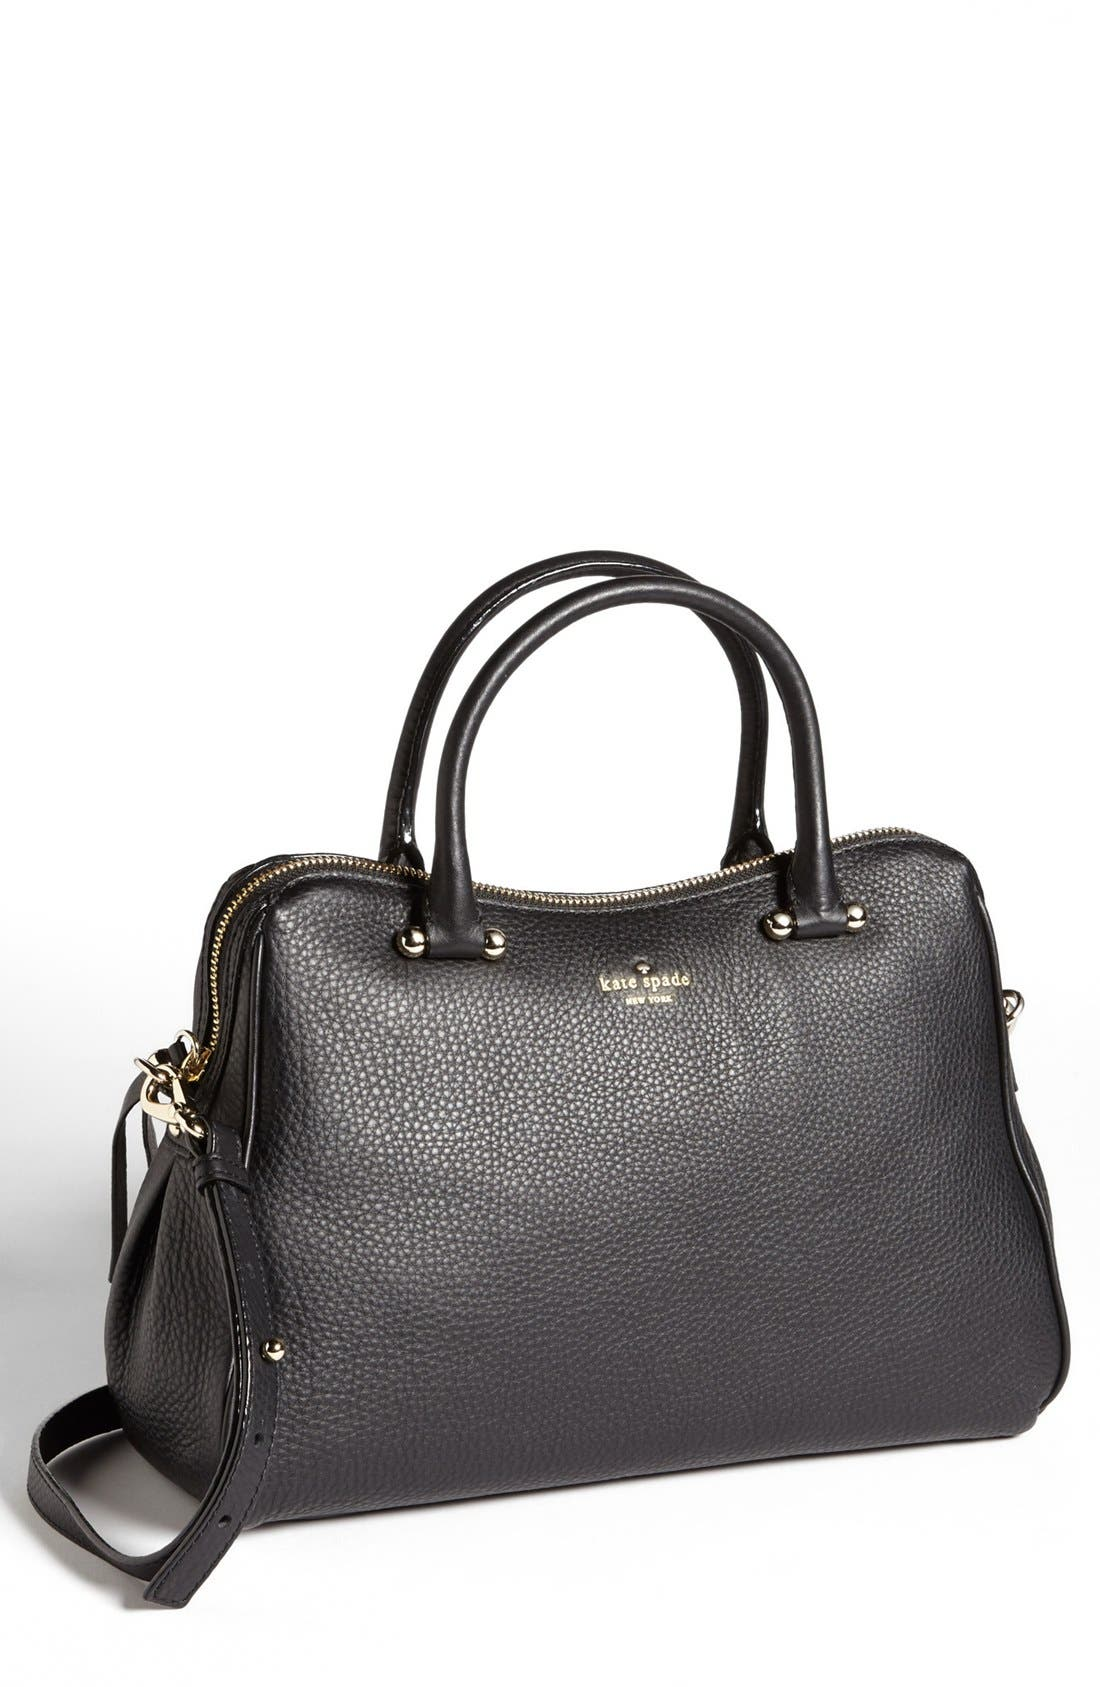 Alternate Image 1 Selected - kate spade new york 'charles street - audrey' leather satchel